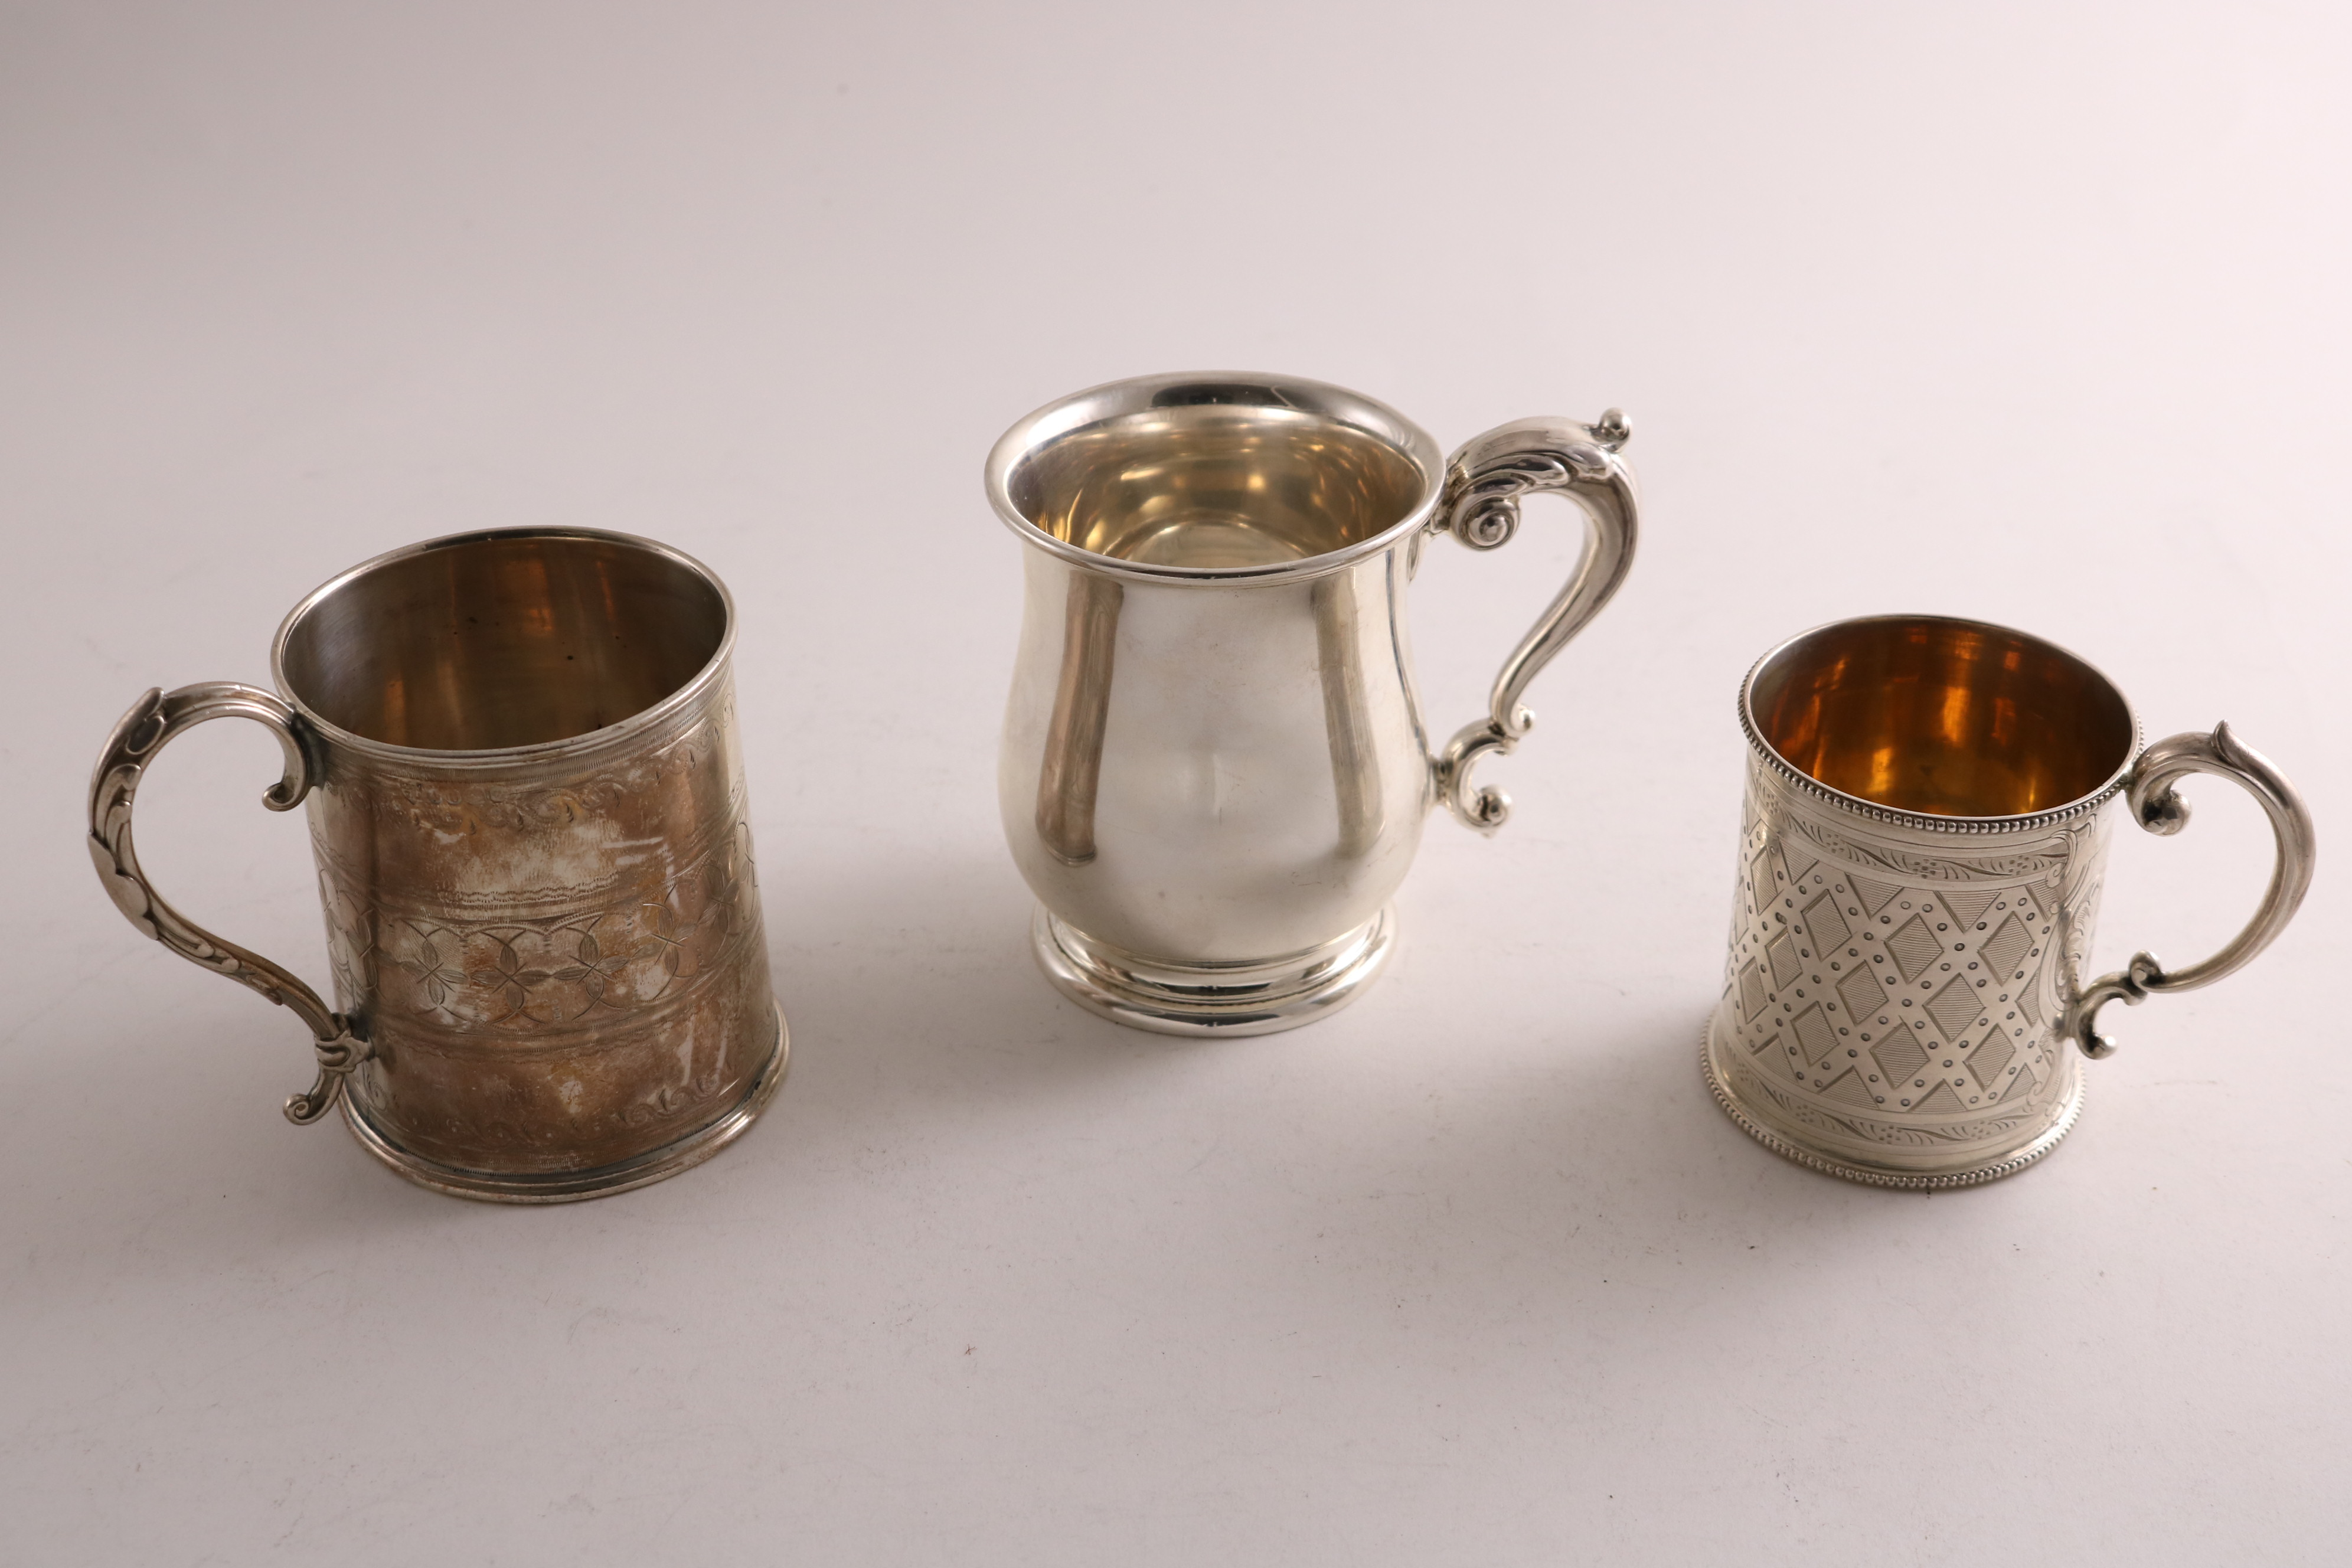 Lot 60 - AN EARLY 20TH CENTURY SMALL SILVER MUG of baluster form with a leaf-capped scroll handle, by W.